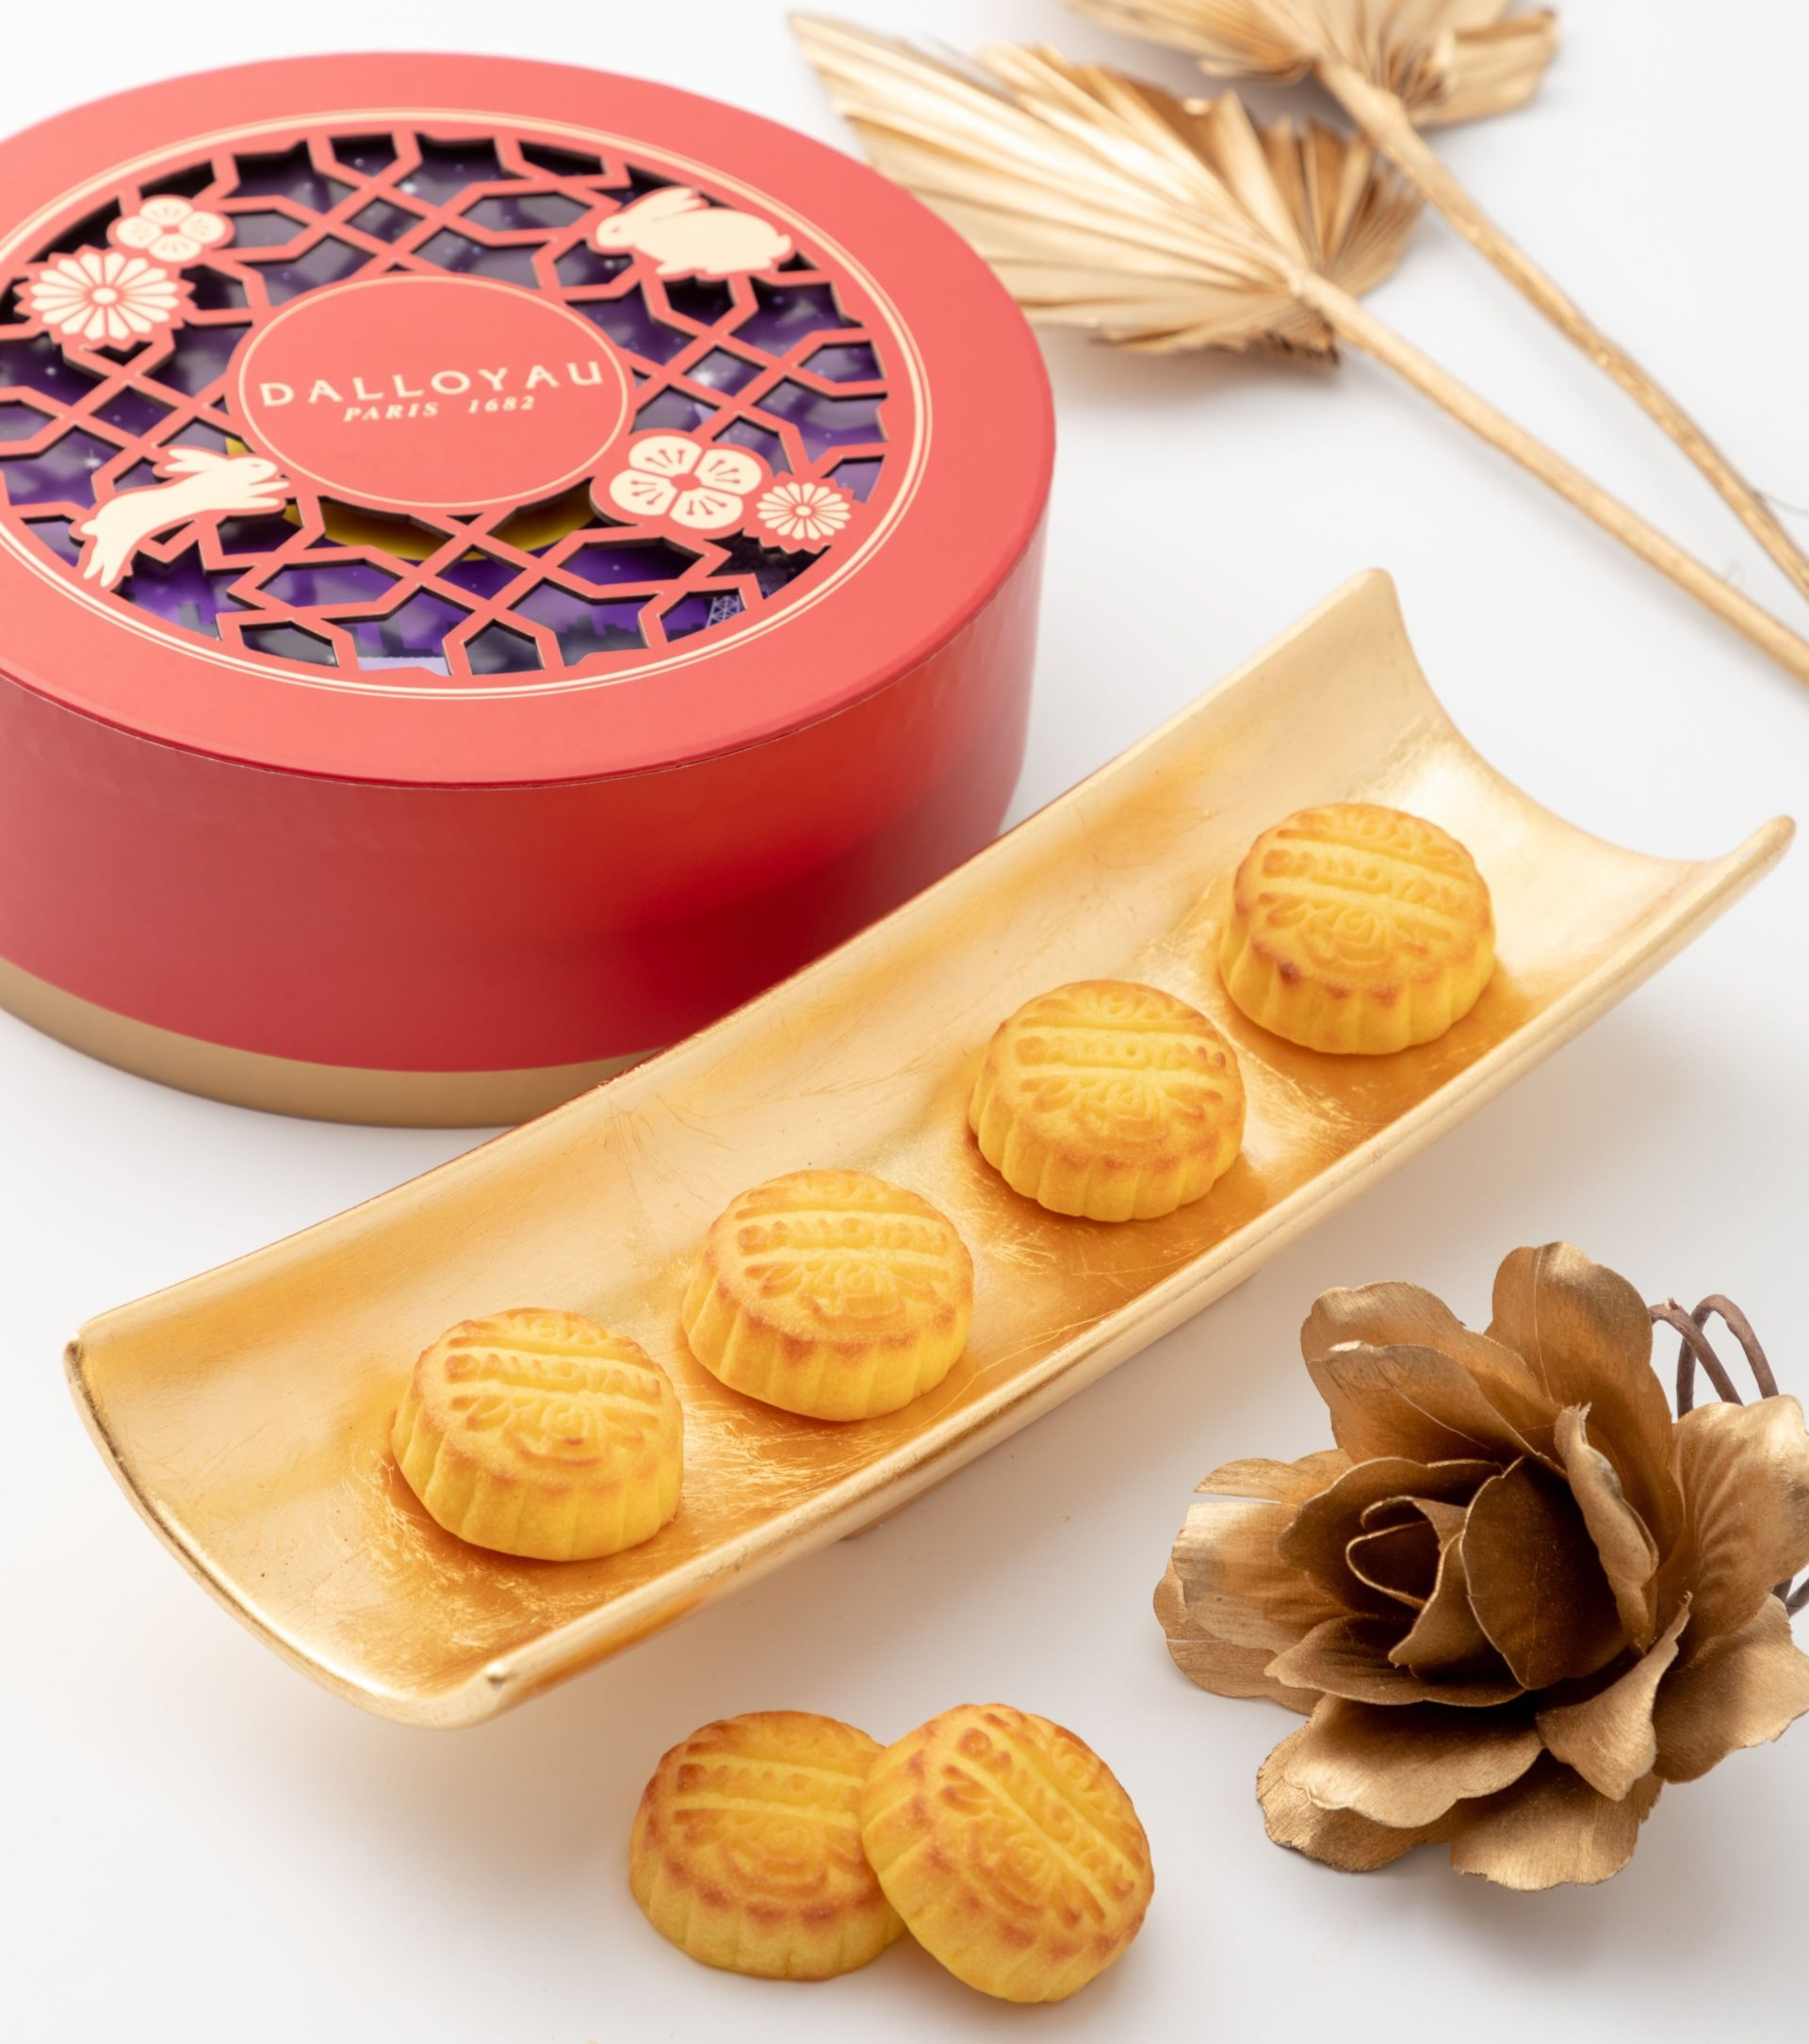 10 Hong Kong Mooncakes That are Worth the Calories this Mid-Autumn 2019